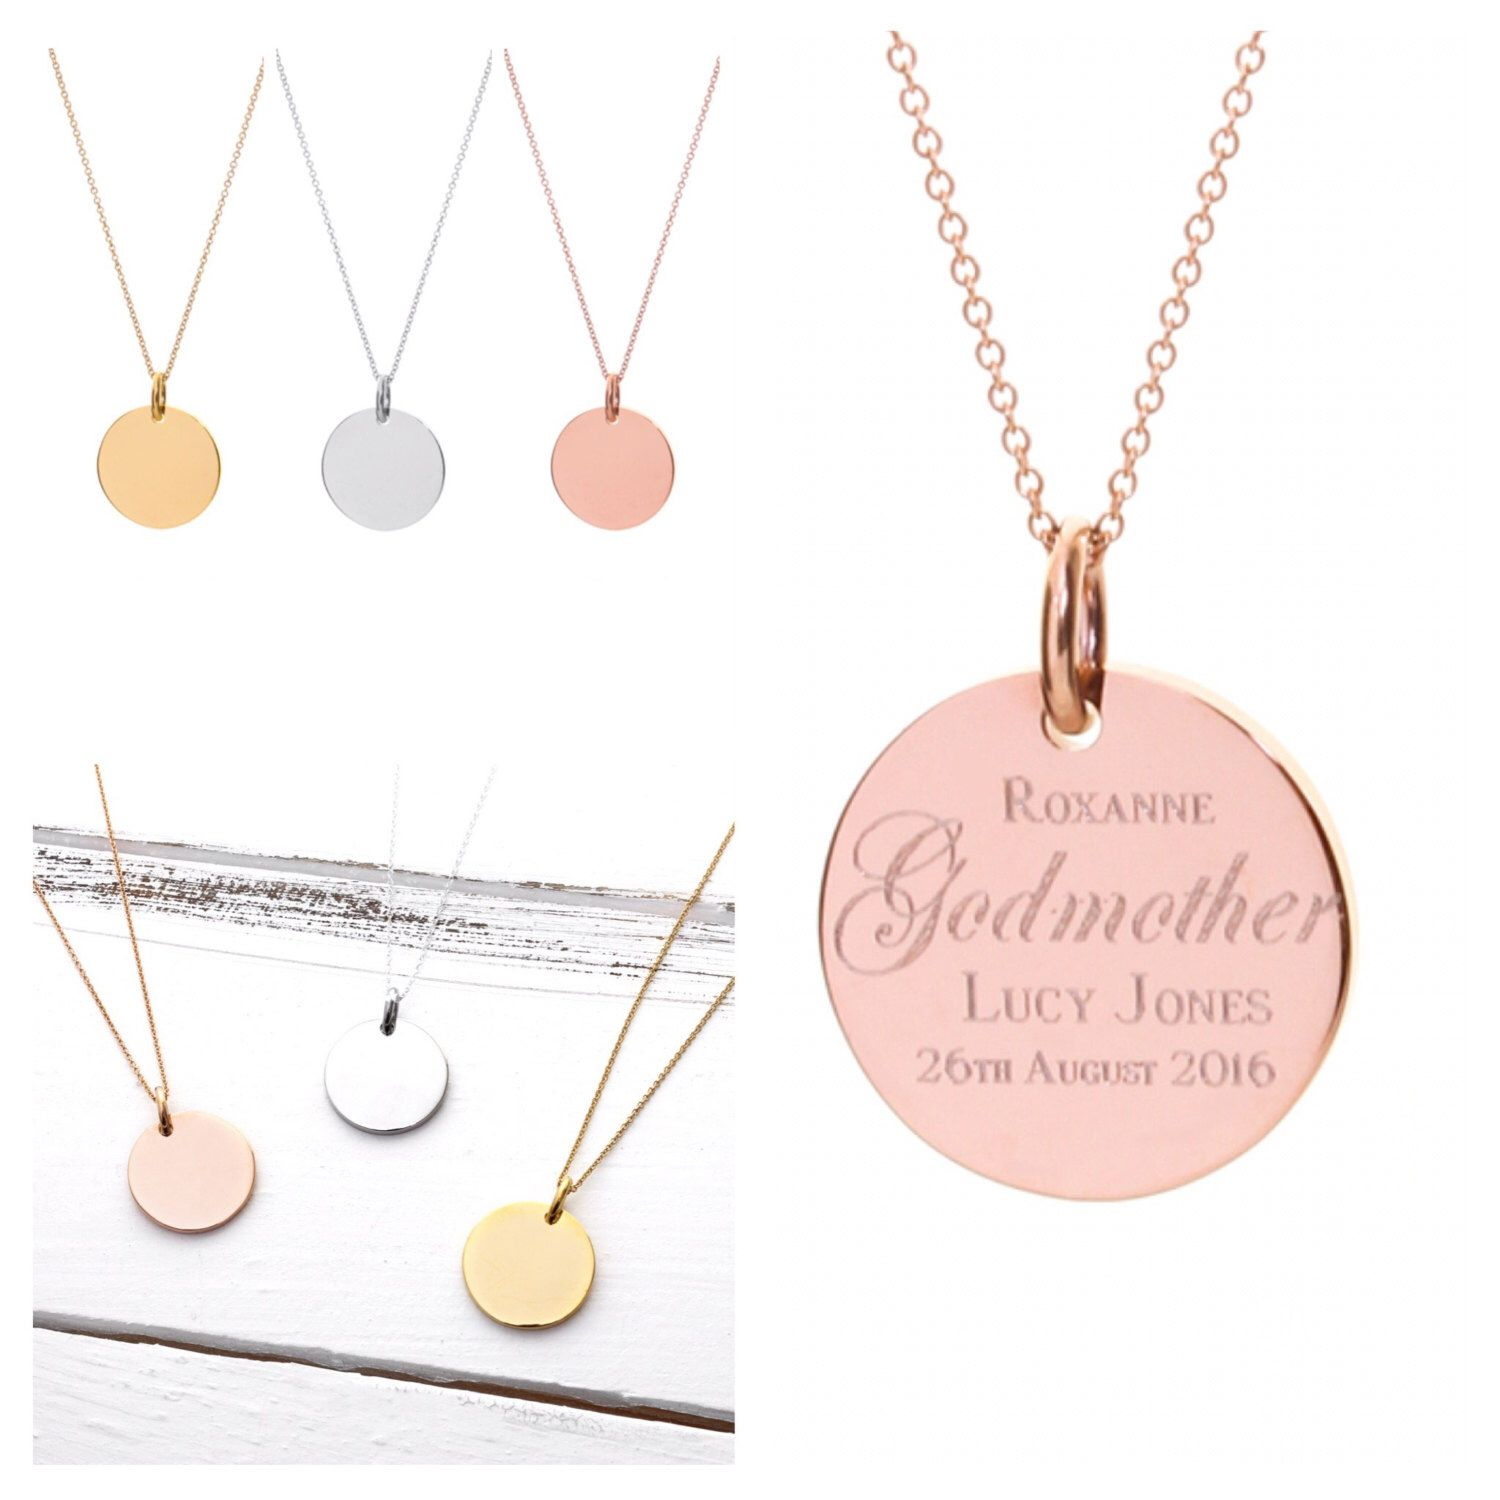 Godmother gift godmother necklace gift ideas for godmothers godmother gift godmother necklace gift ideas for godmothers christening gifts baptism gifts aloadofball Gallery